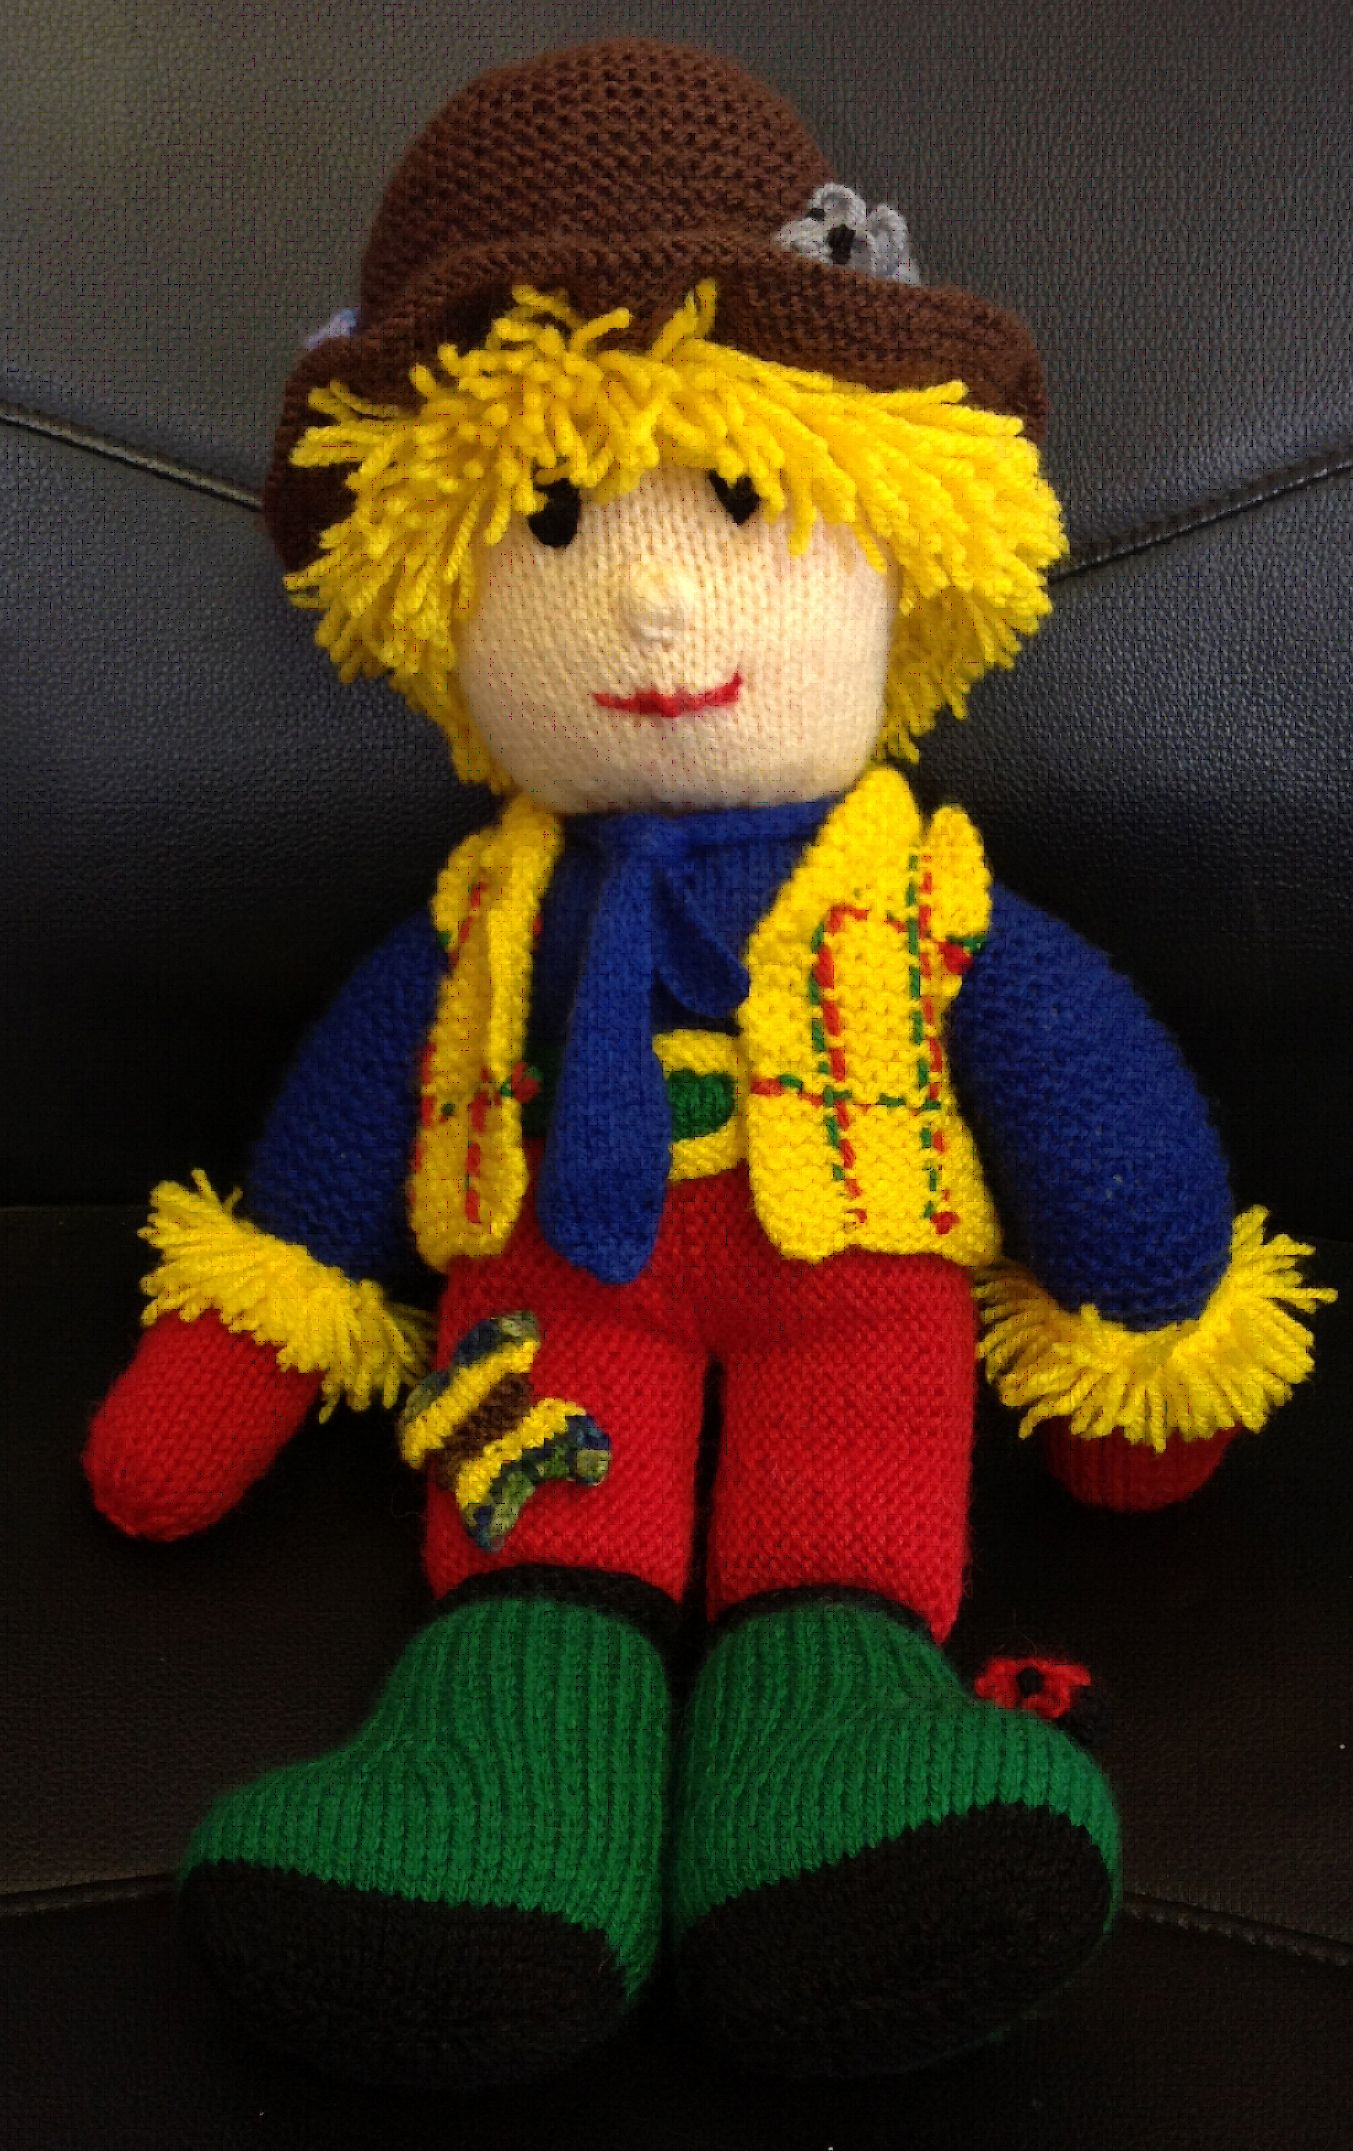 Dementia charity pattern: Archie the Scarecrow | Scarecrows and Patterns